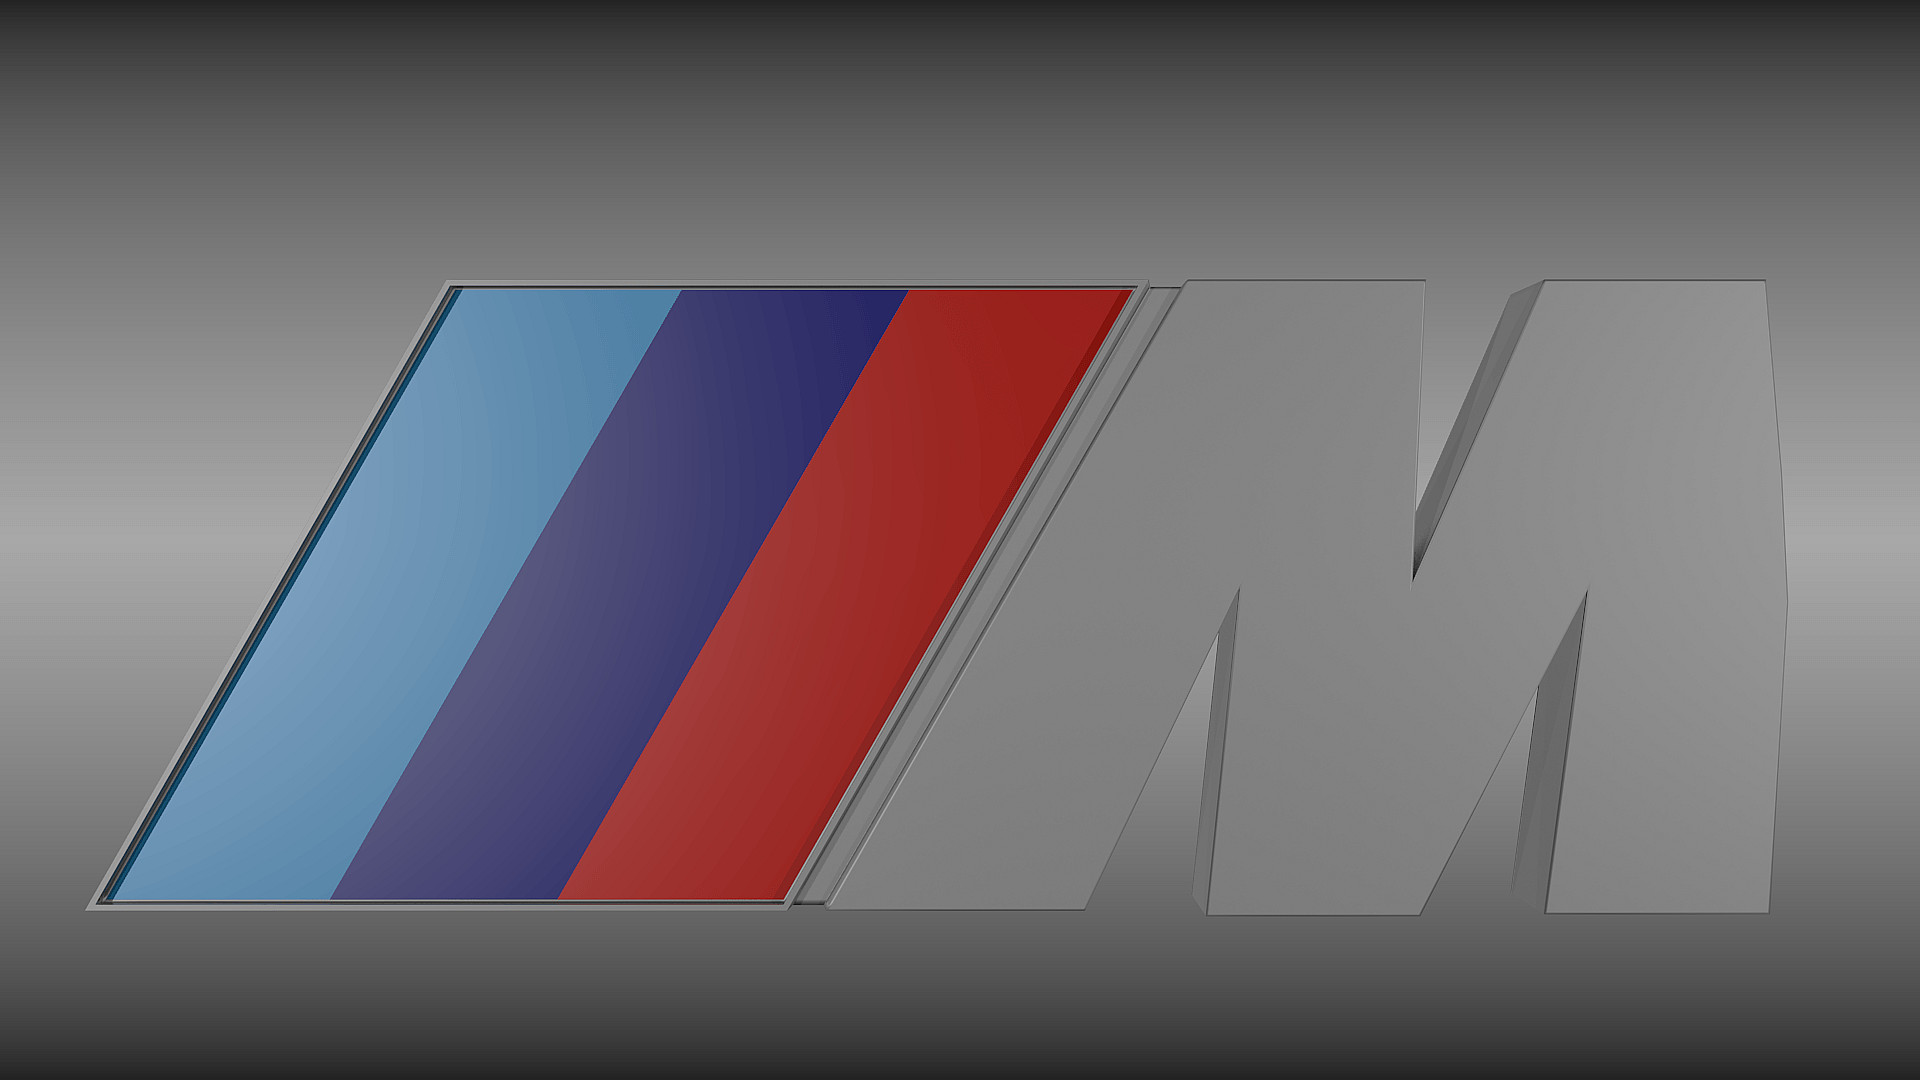 1920x1080 bmw m logo wallpapers tapete höhle m3 iphone